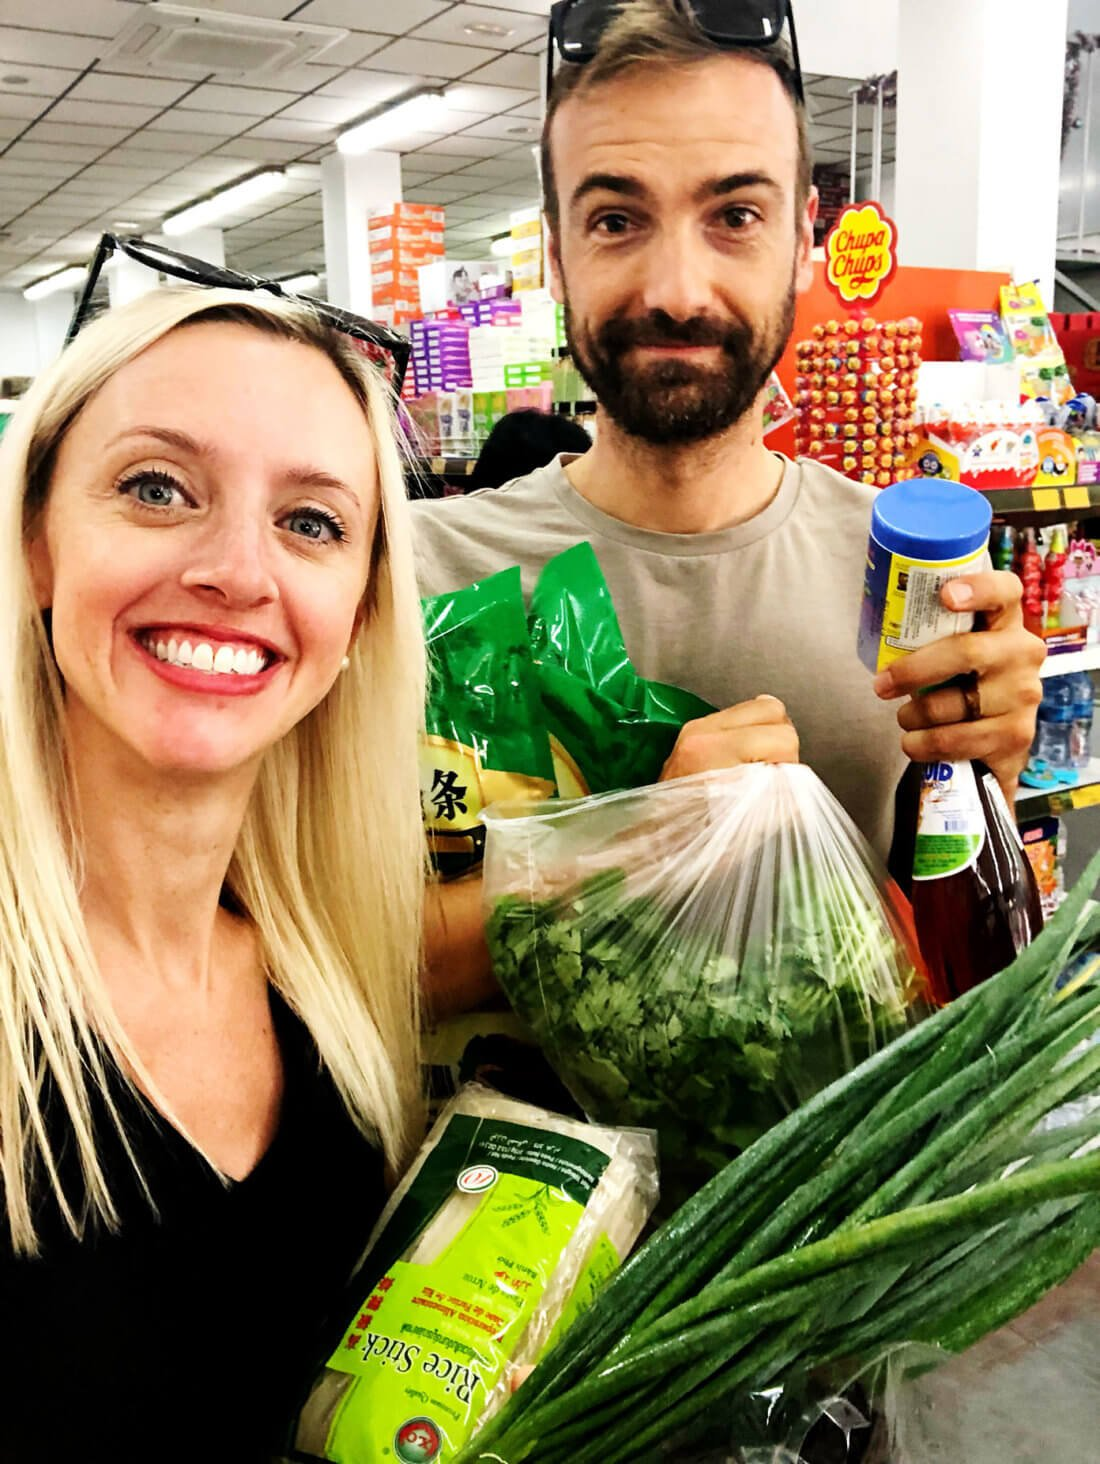 Grocery shopping date